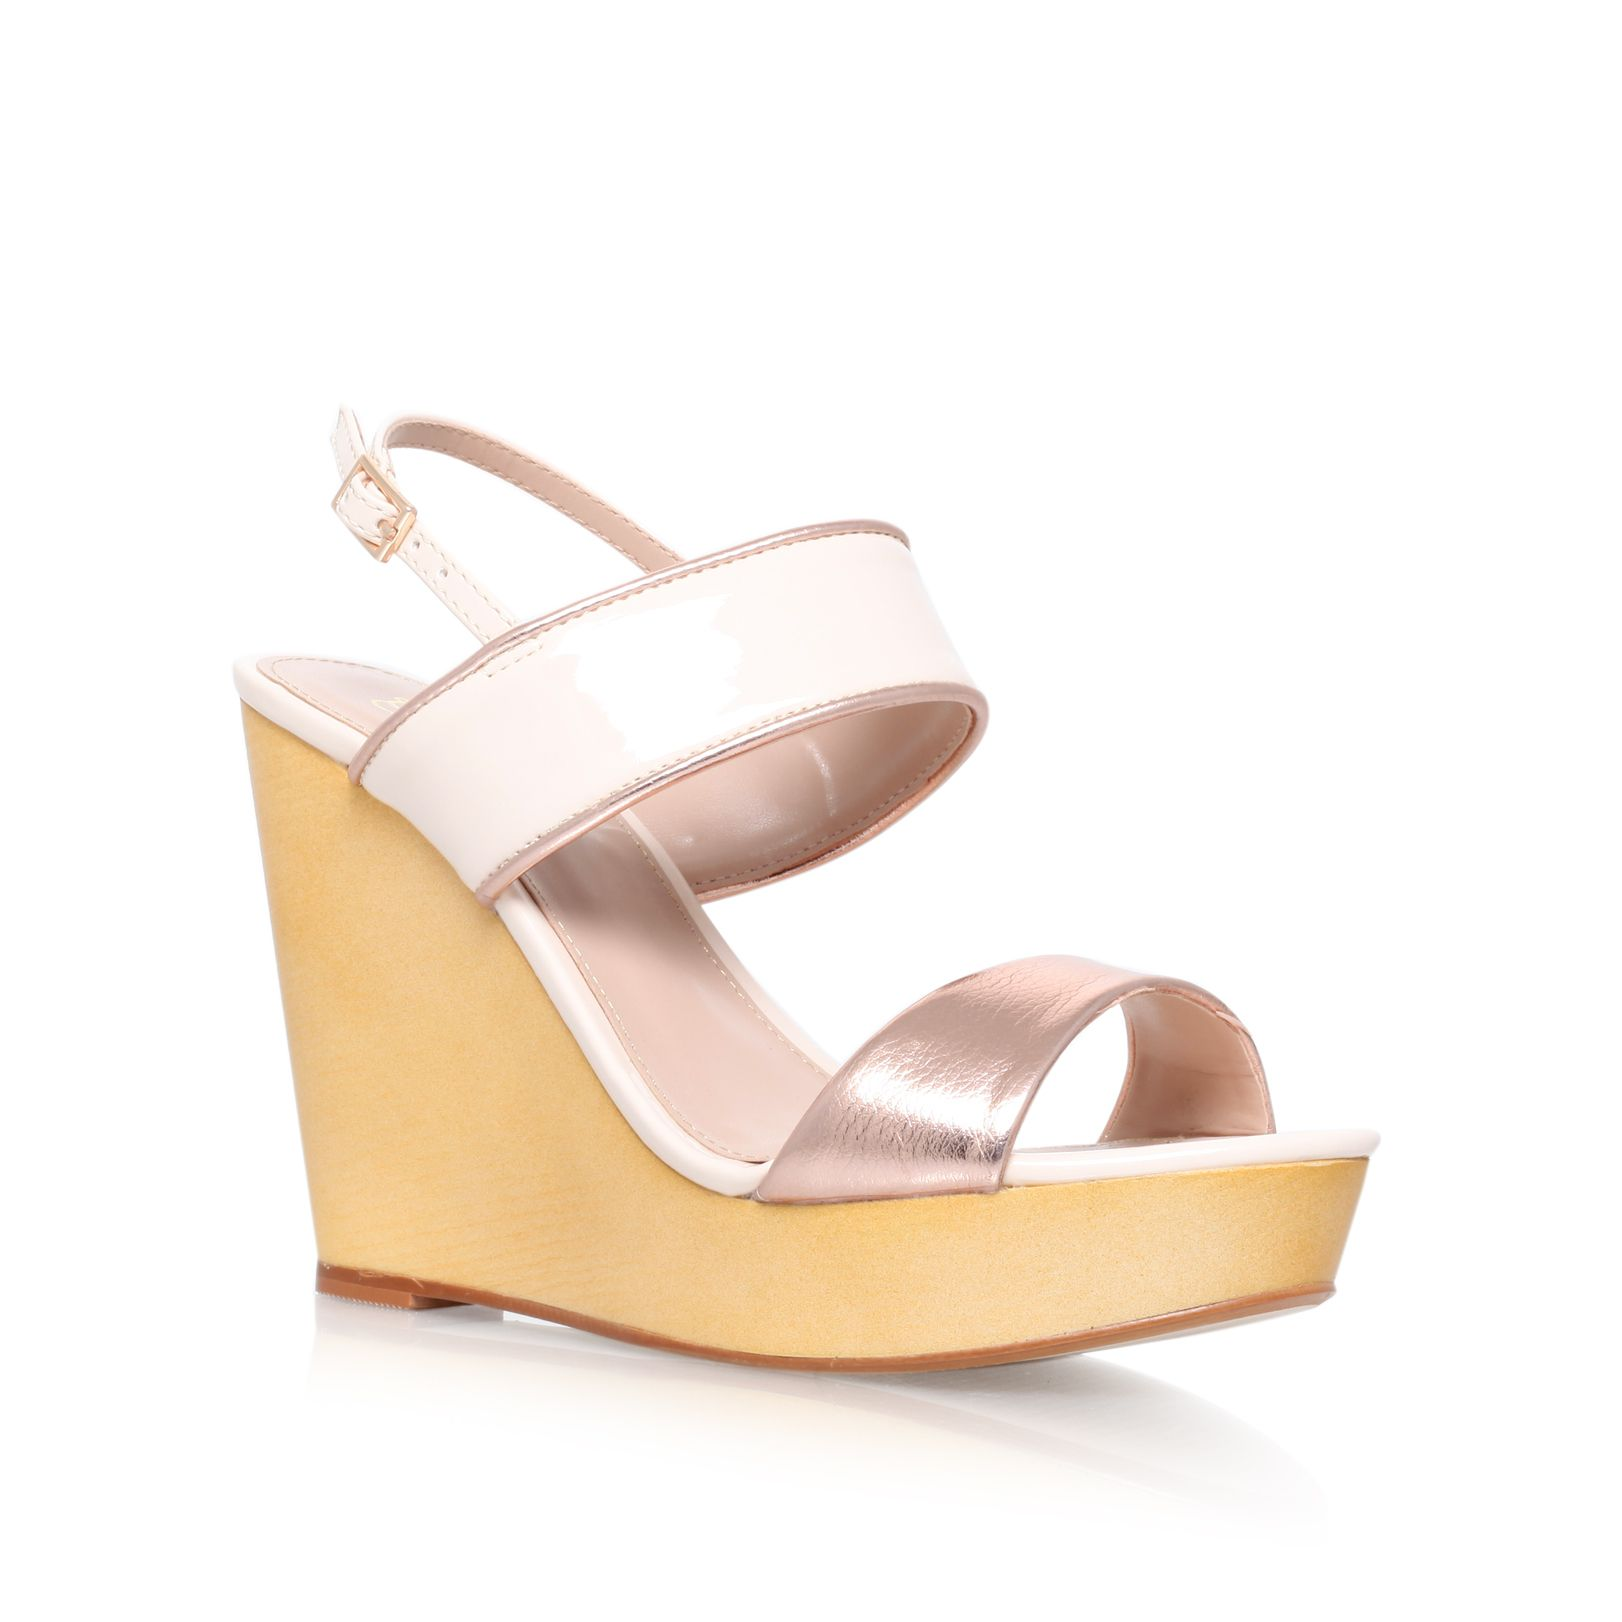 Molly wedge sandals